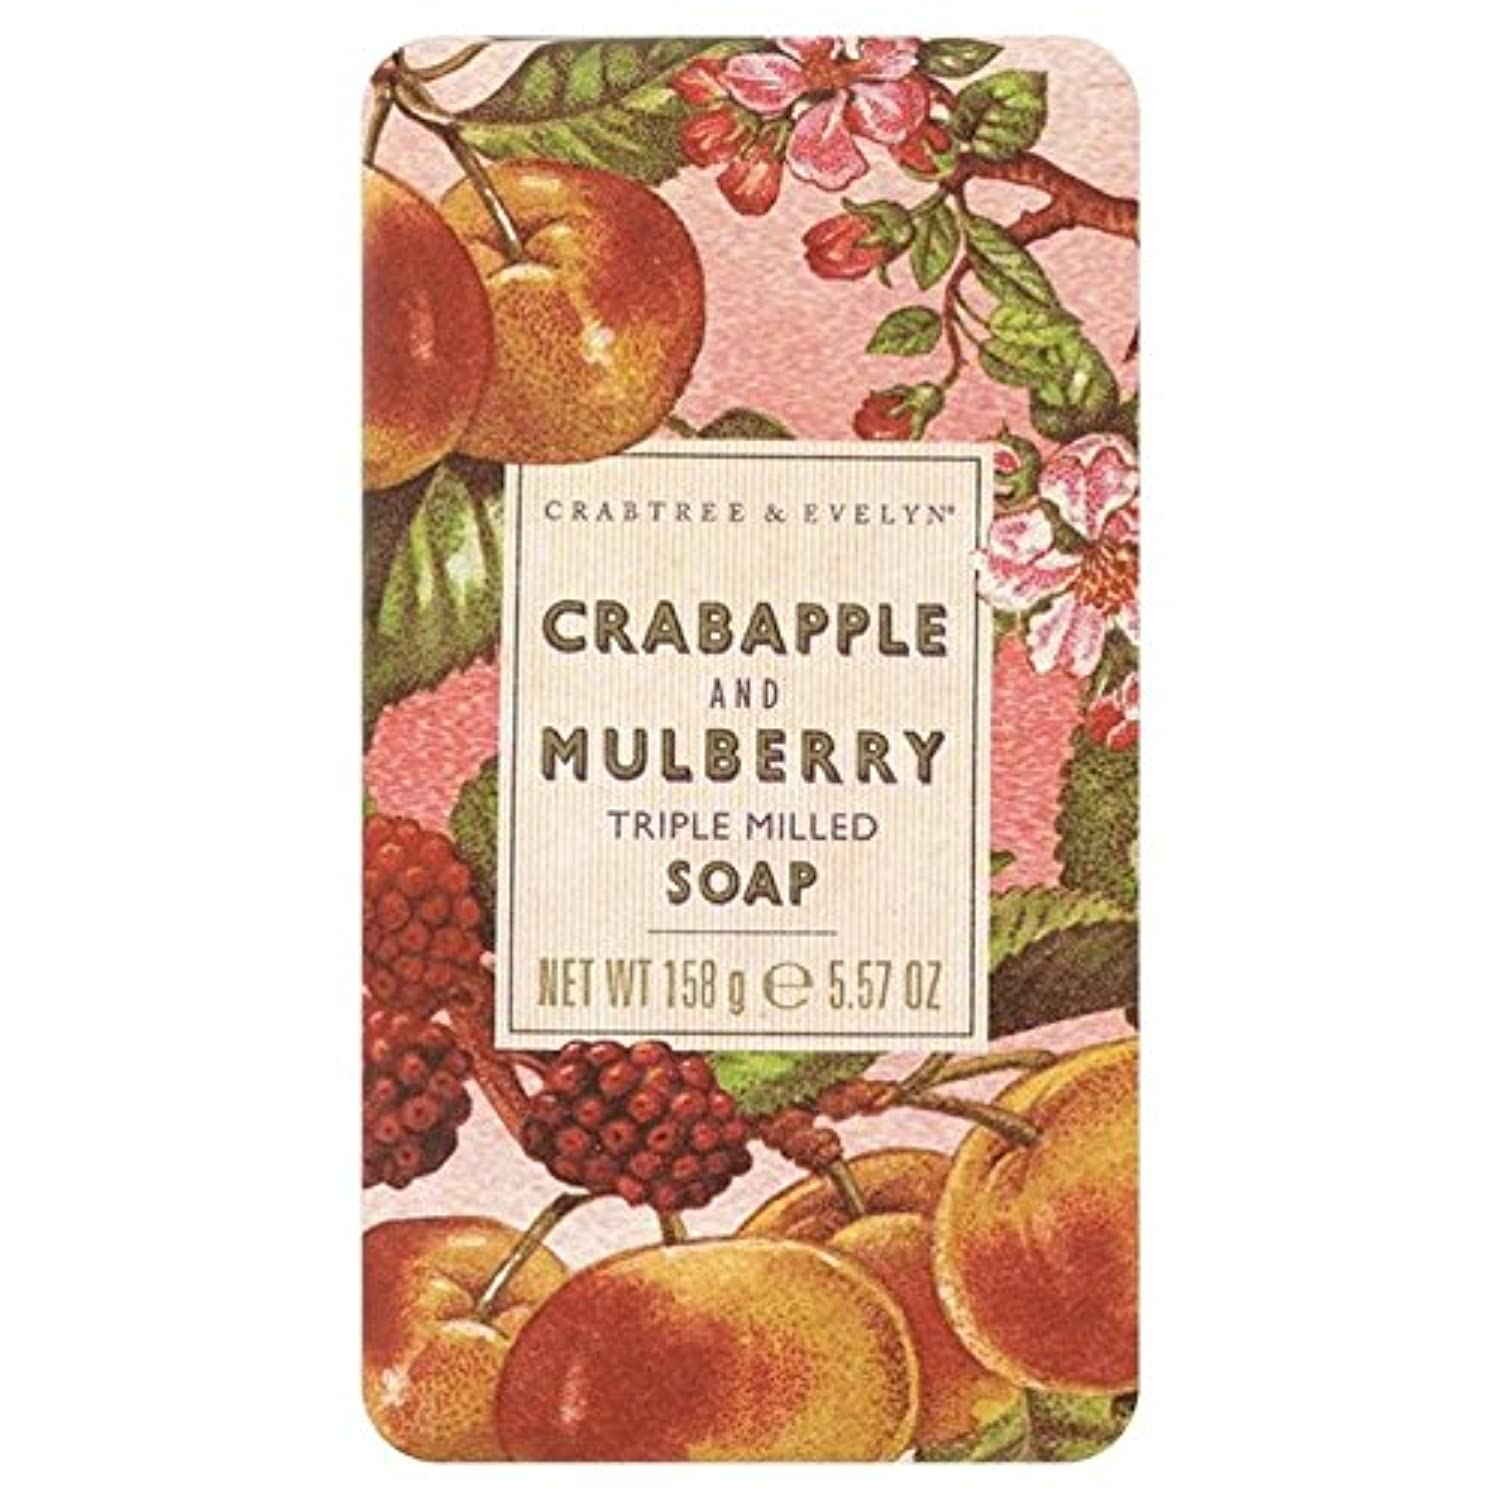 Crabtree & Evelyn Crabapple and Mulberry Heritage Soap 150g (Pack of 6) - クラブツリー&イヴリンと桑遺産石鹸150グラム x6 [並行輸入品]